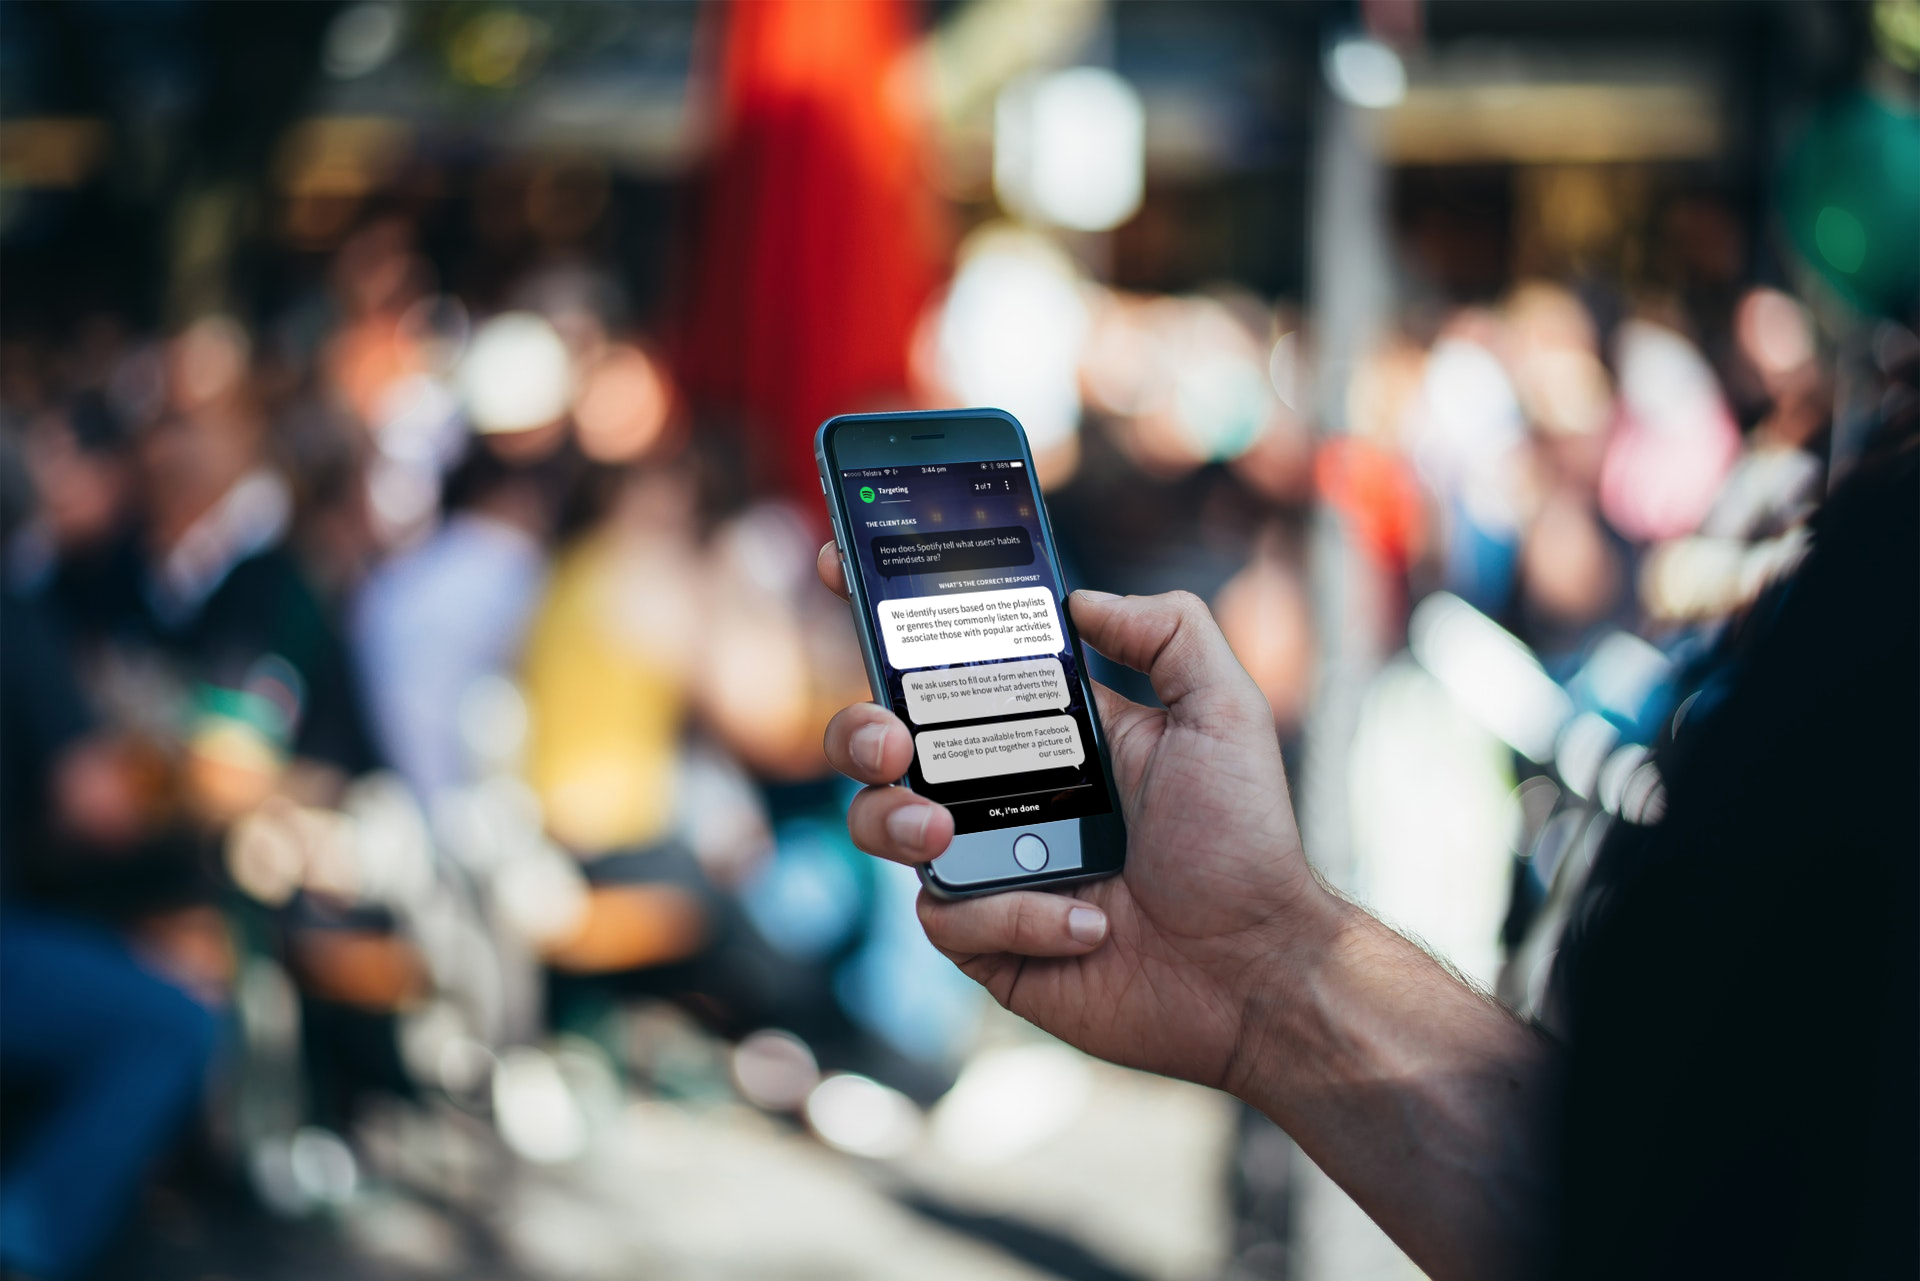 The Top 7 Reasons Learning is More Approachable on Mobile